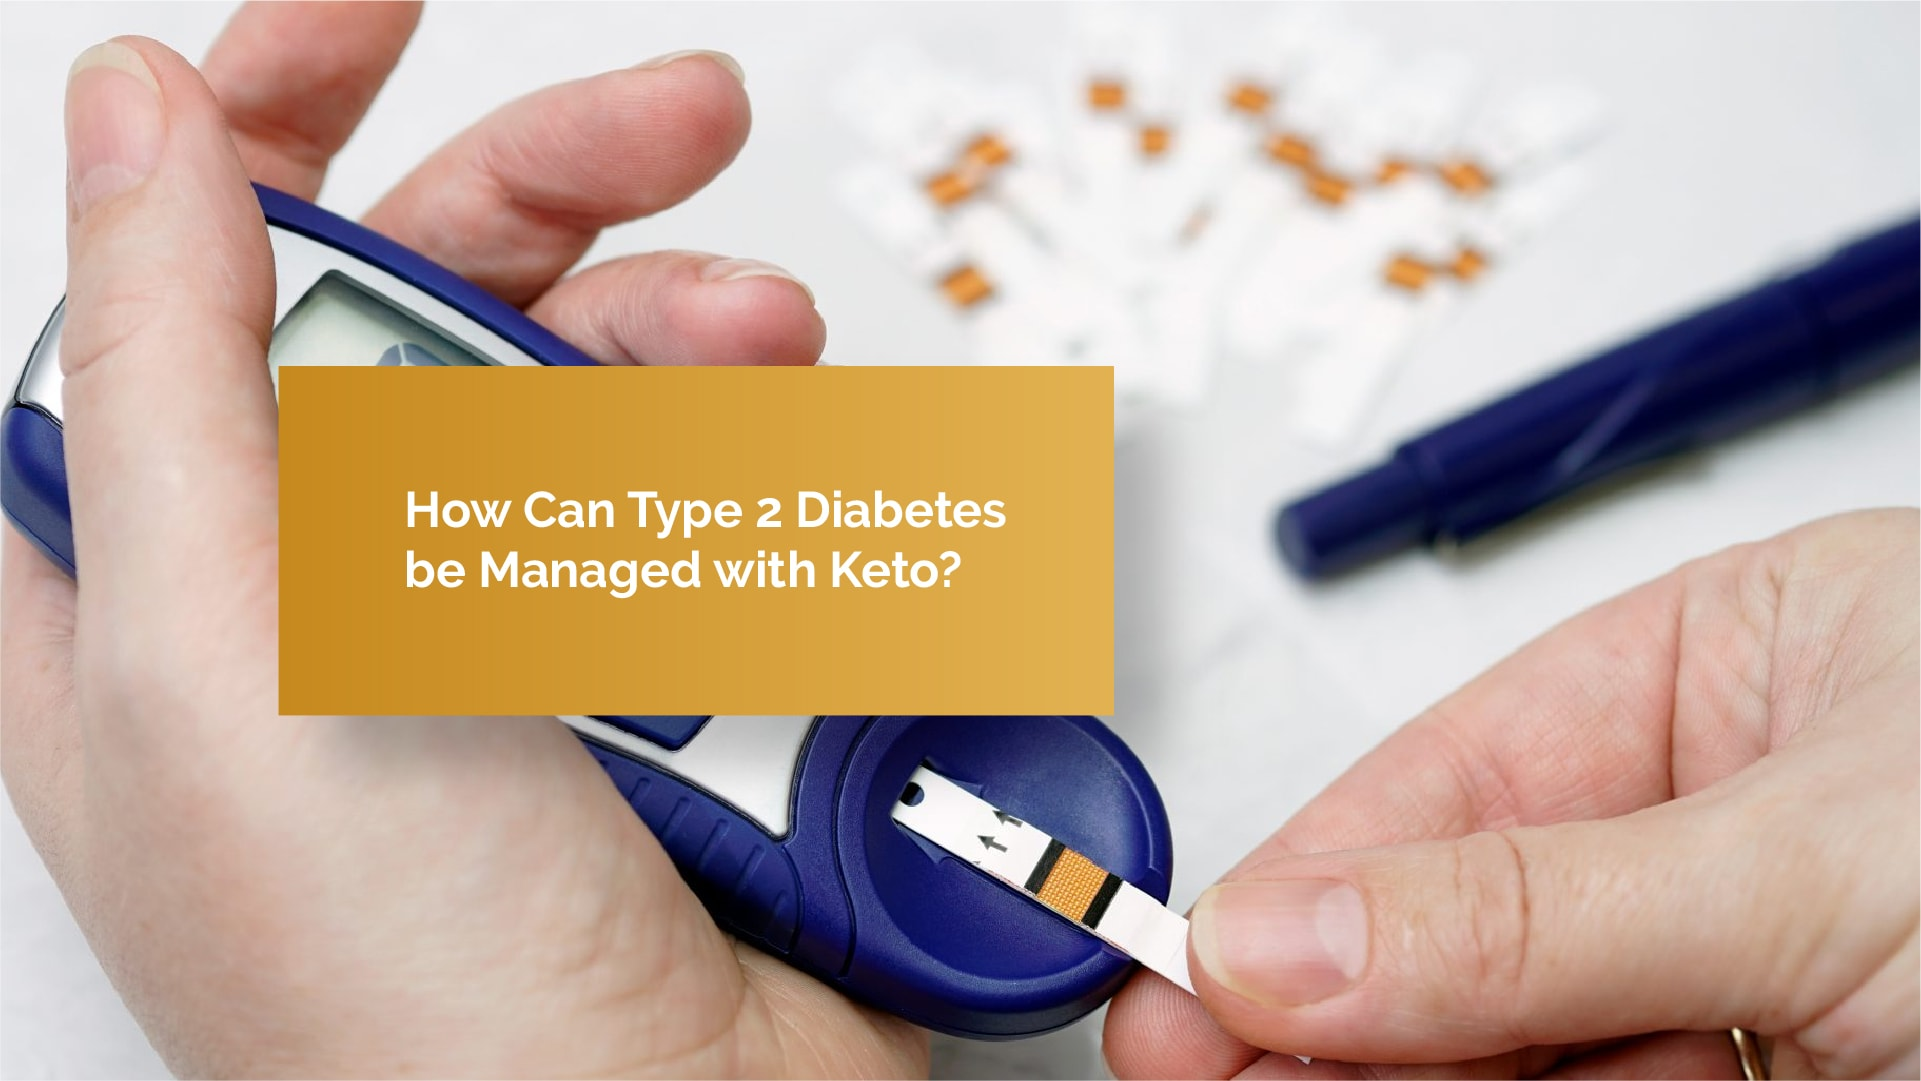 How Can Type 2 Diabetes be Managed with Keto